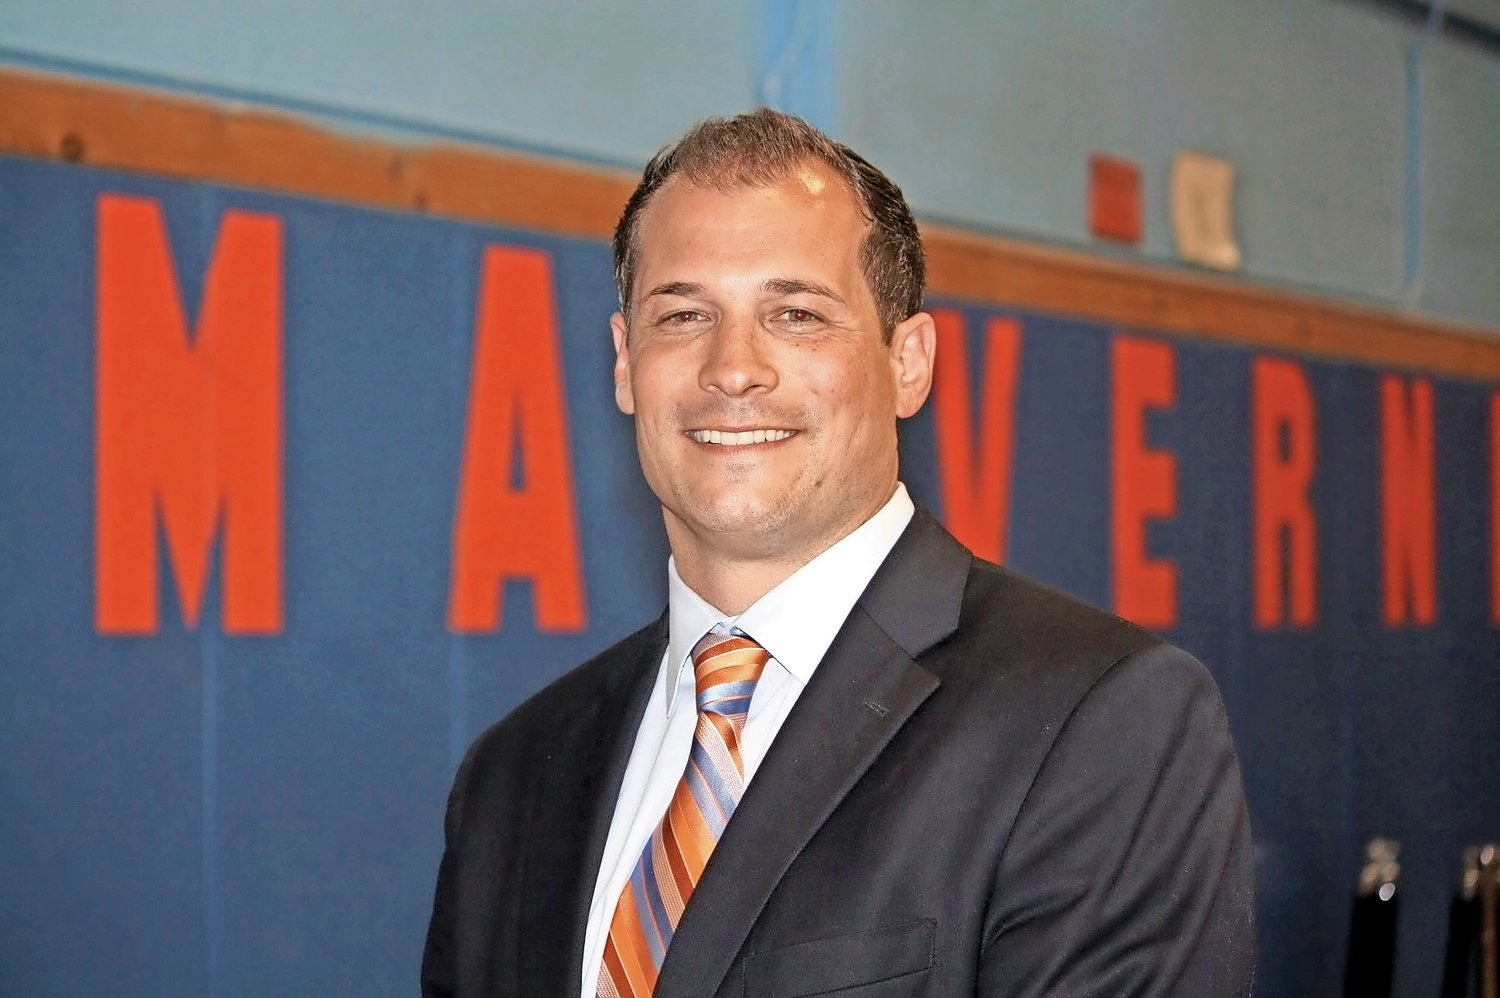 Malverne High School Principal Vincent Romano was recently selected as a Leader in Education by St. John's University.